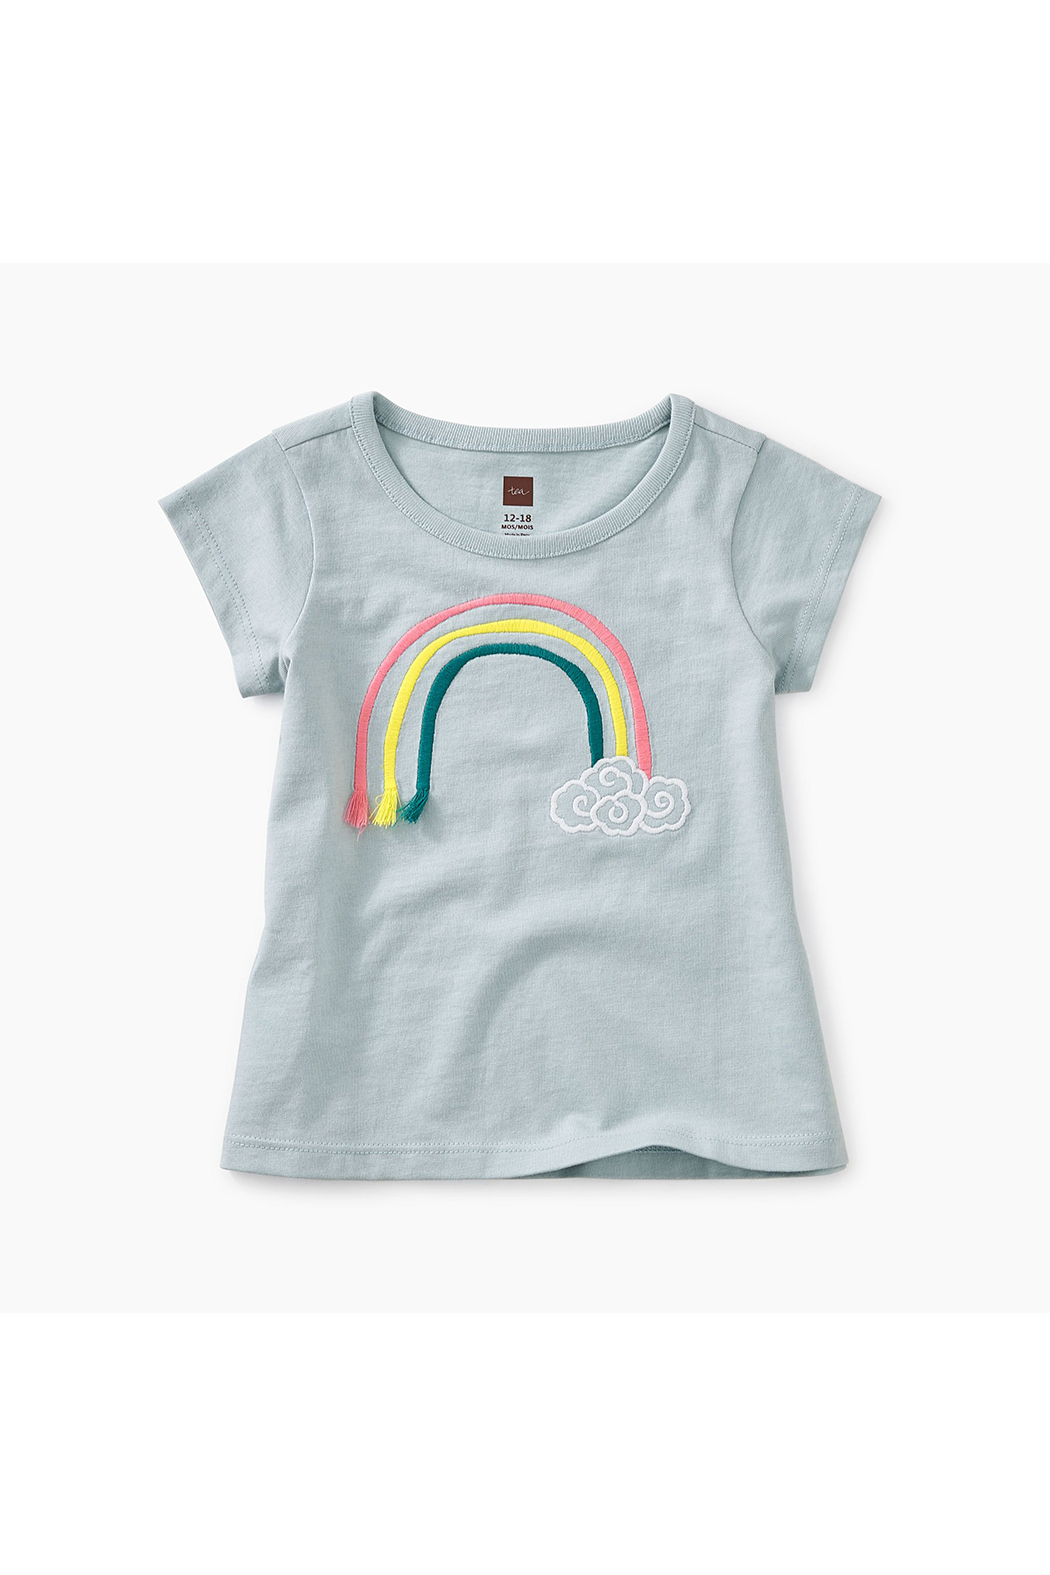 Tea Collection 3D Rainbow Baby Graphic Tee - Main Image